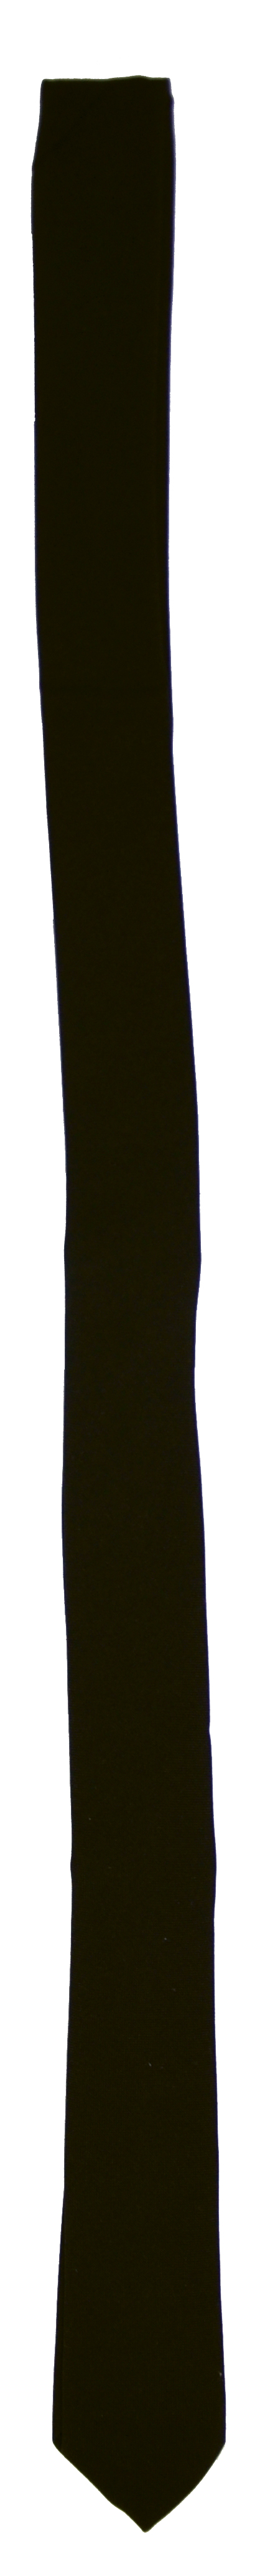 Featured Image for GANGSTER TIE LONG BLACK